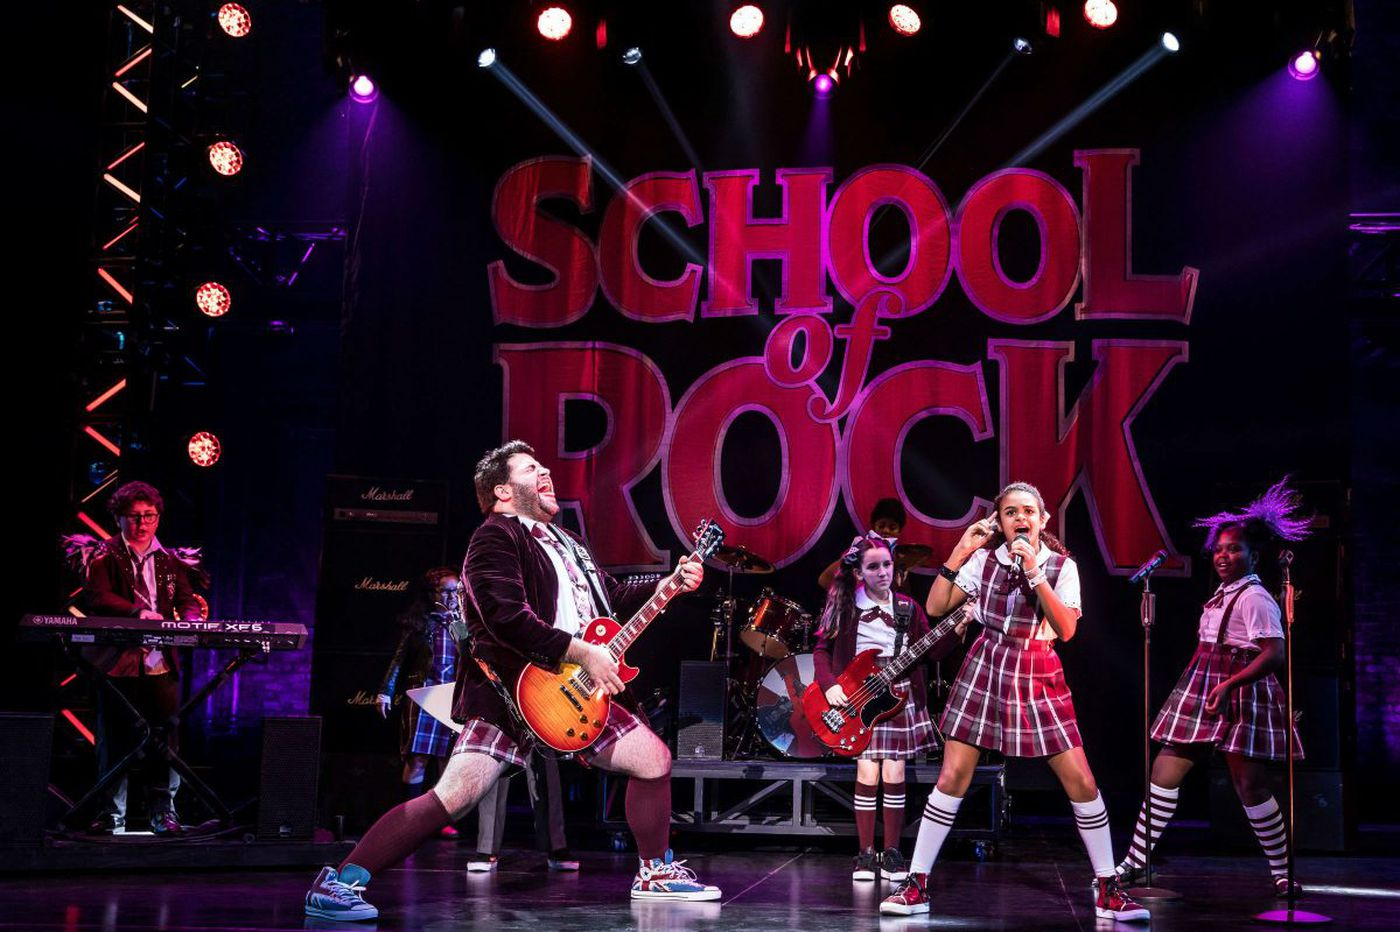 'School of Rock' at the Academy of Music: A two-hour blast of entertainment, with heart